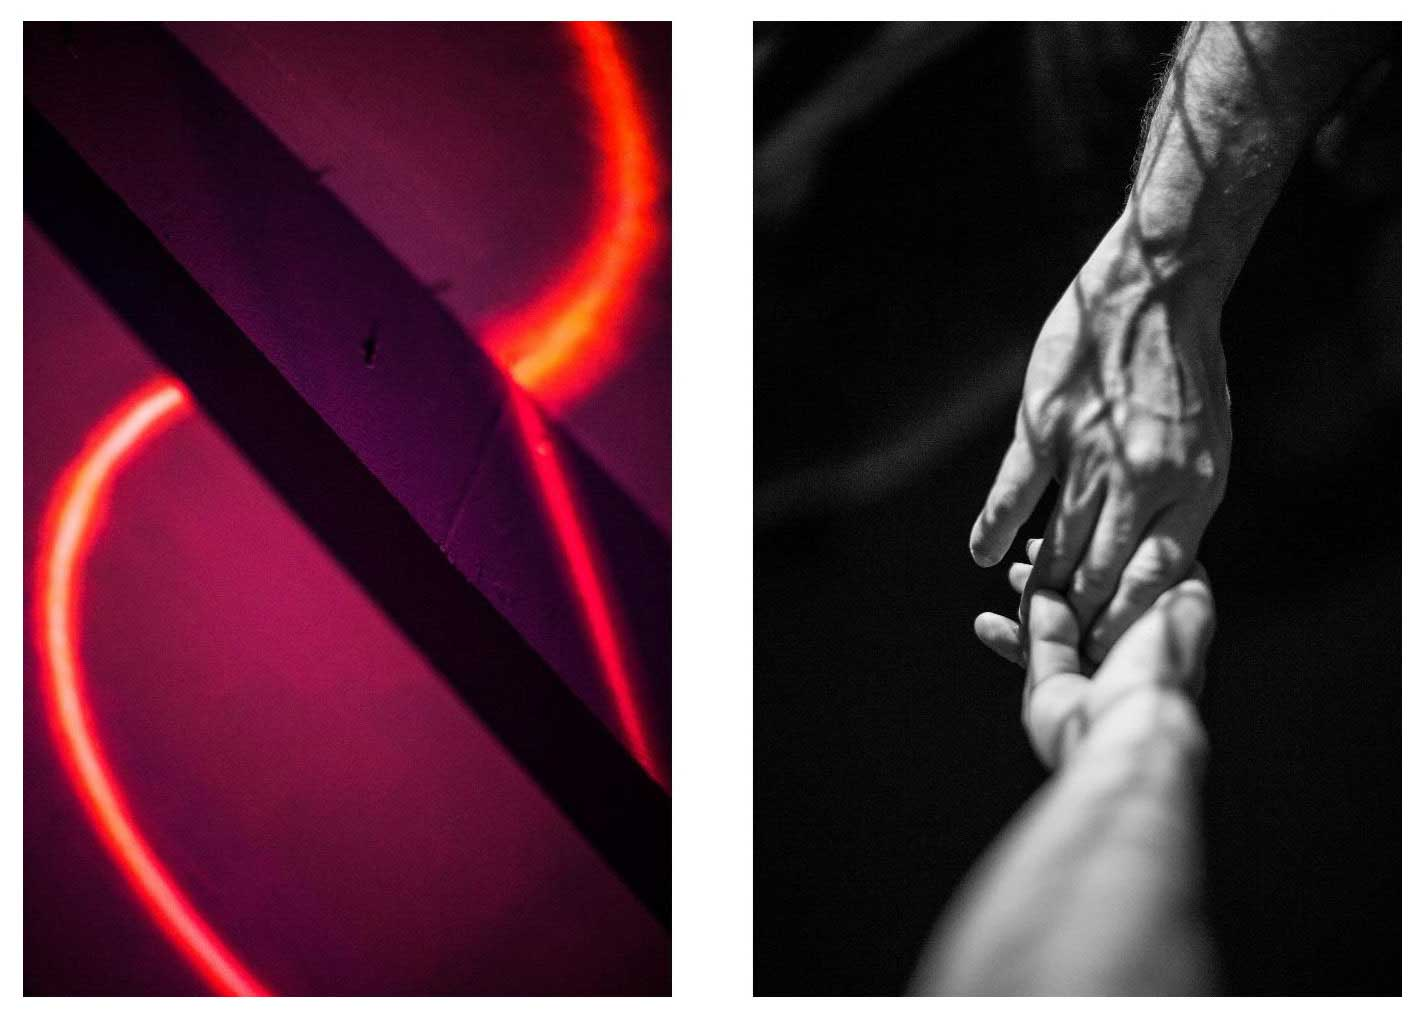 An abstract image of a red neon light on a pink and purple background next to a black and white image of two hands holding each other